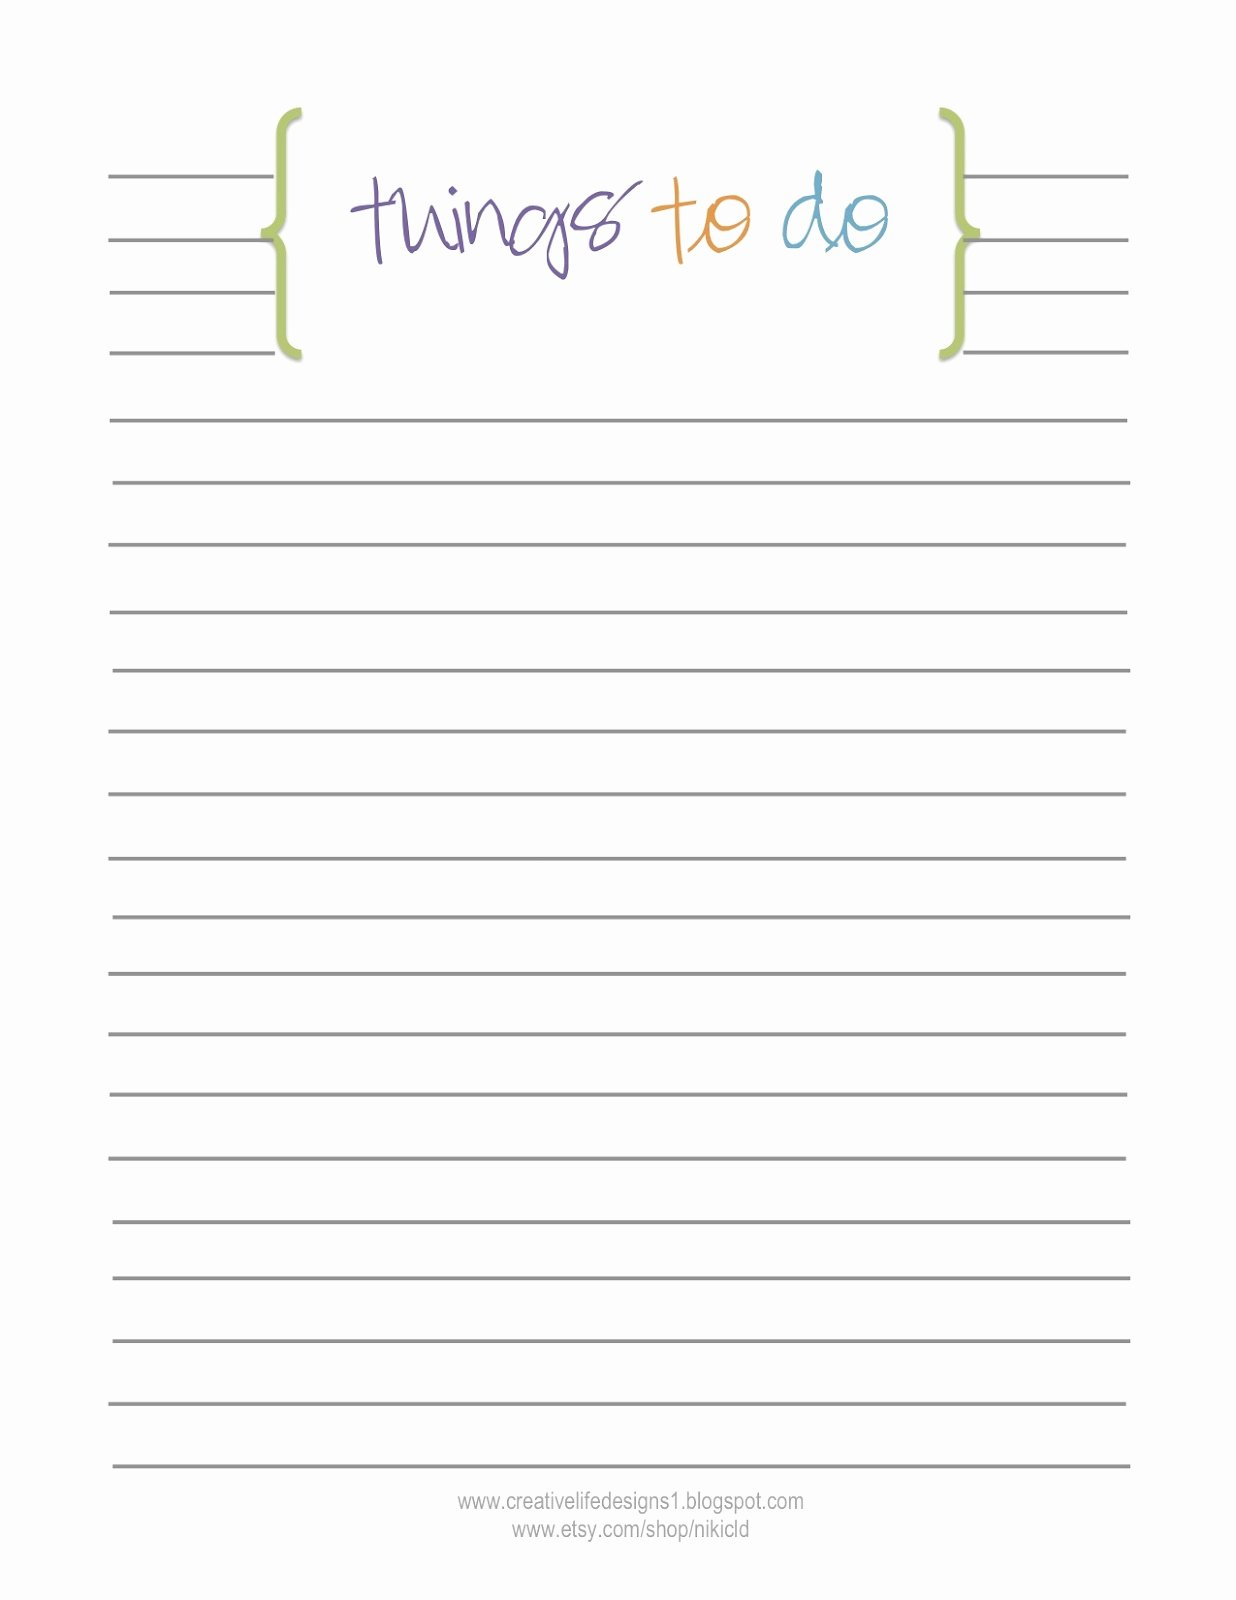 Things to Do Lists Template Inspirational Creative Life Designs Free Printables